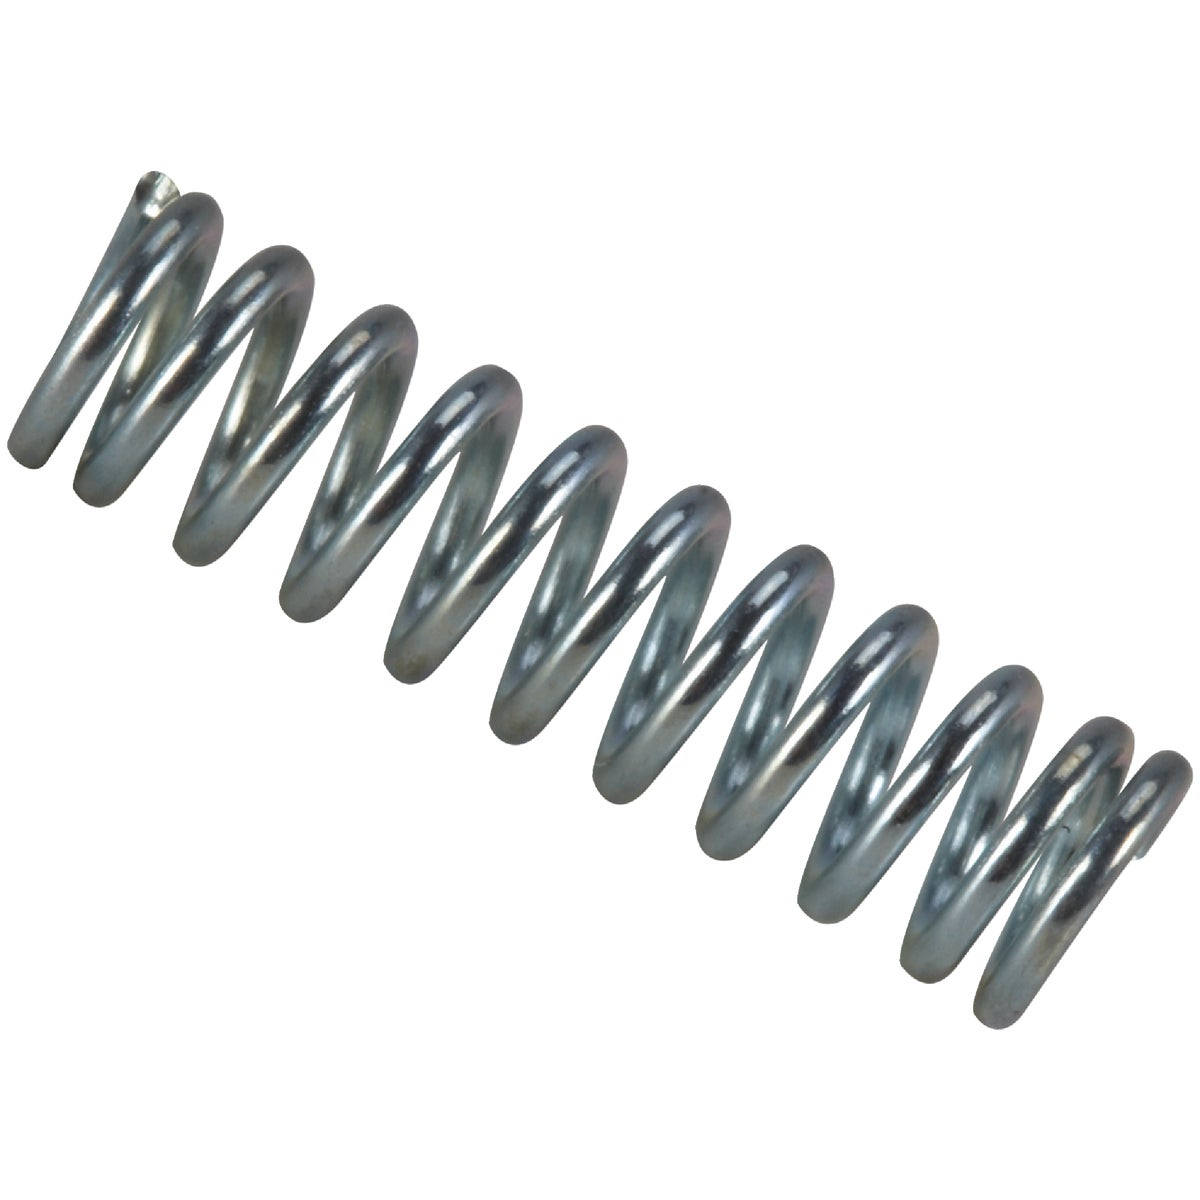 COMPRESSION SPRING - C-526 by Century Spring Corp